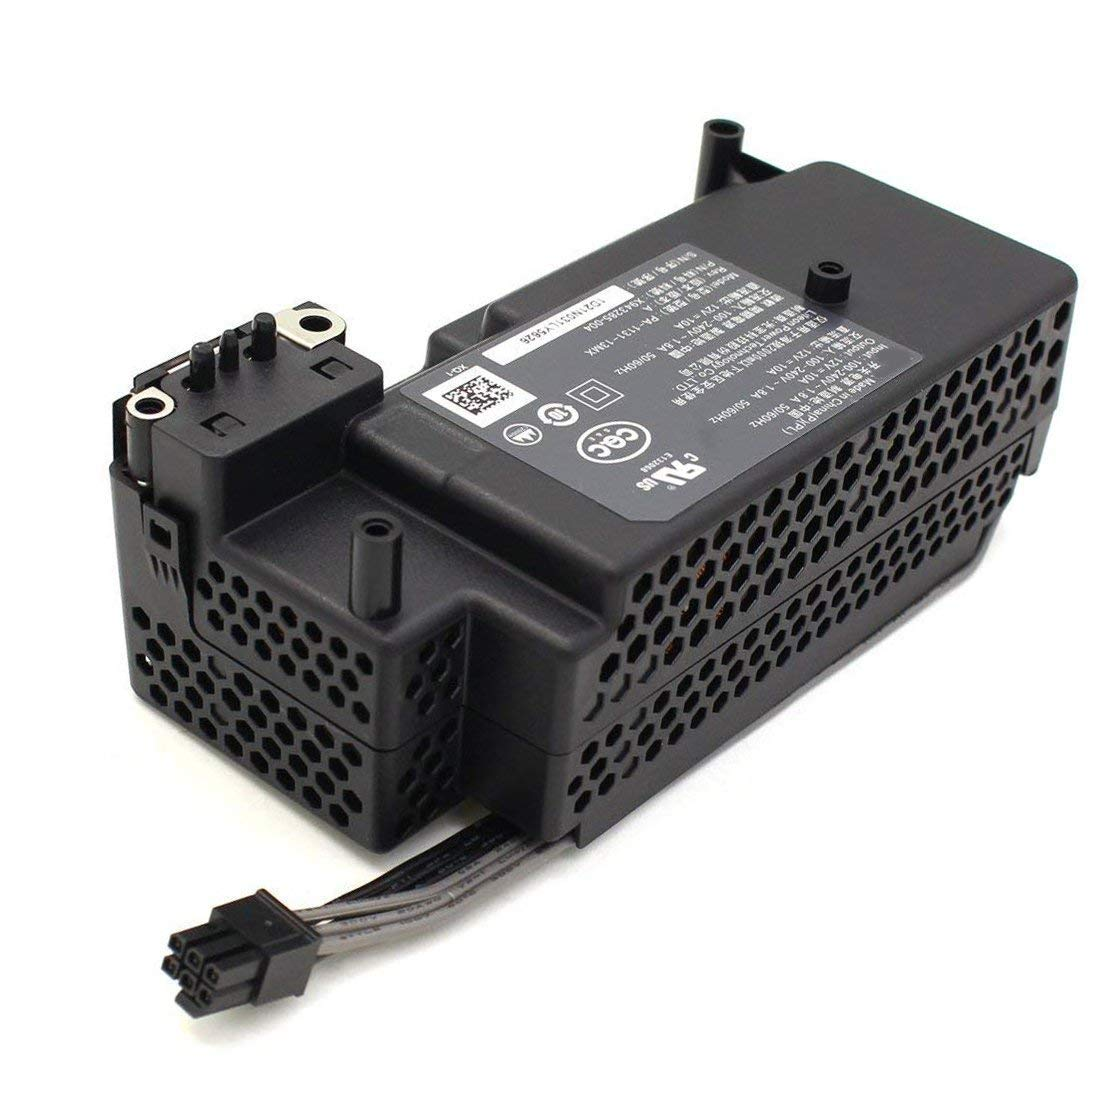 YEECHUN New Replacement Internal Power Supply AC Adapter Brick PA-1131-13MX N15-120P1A for Xbox One S (Slim) 1681 Part Number: X943284-004 X943285-005 X943285-004